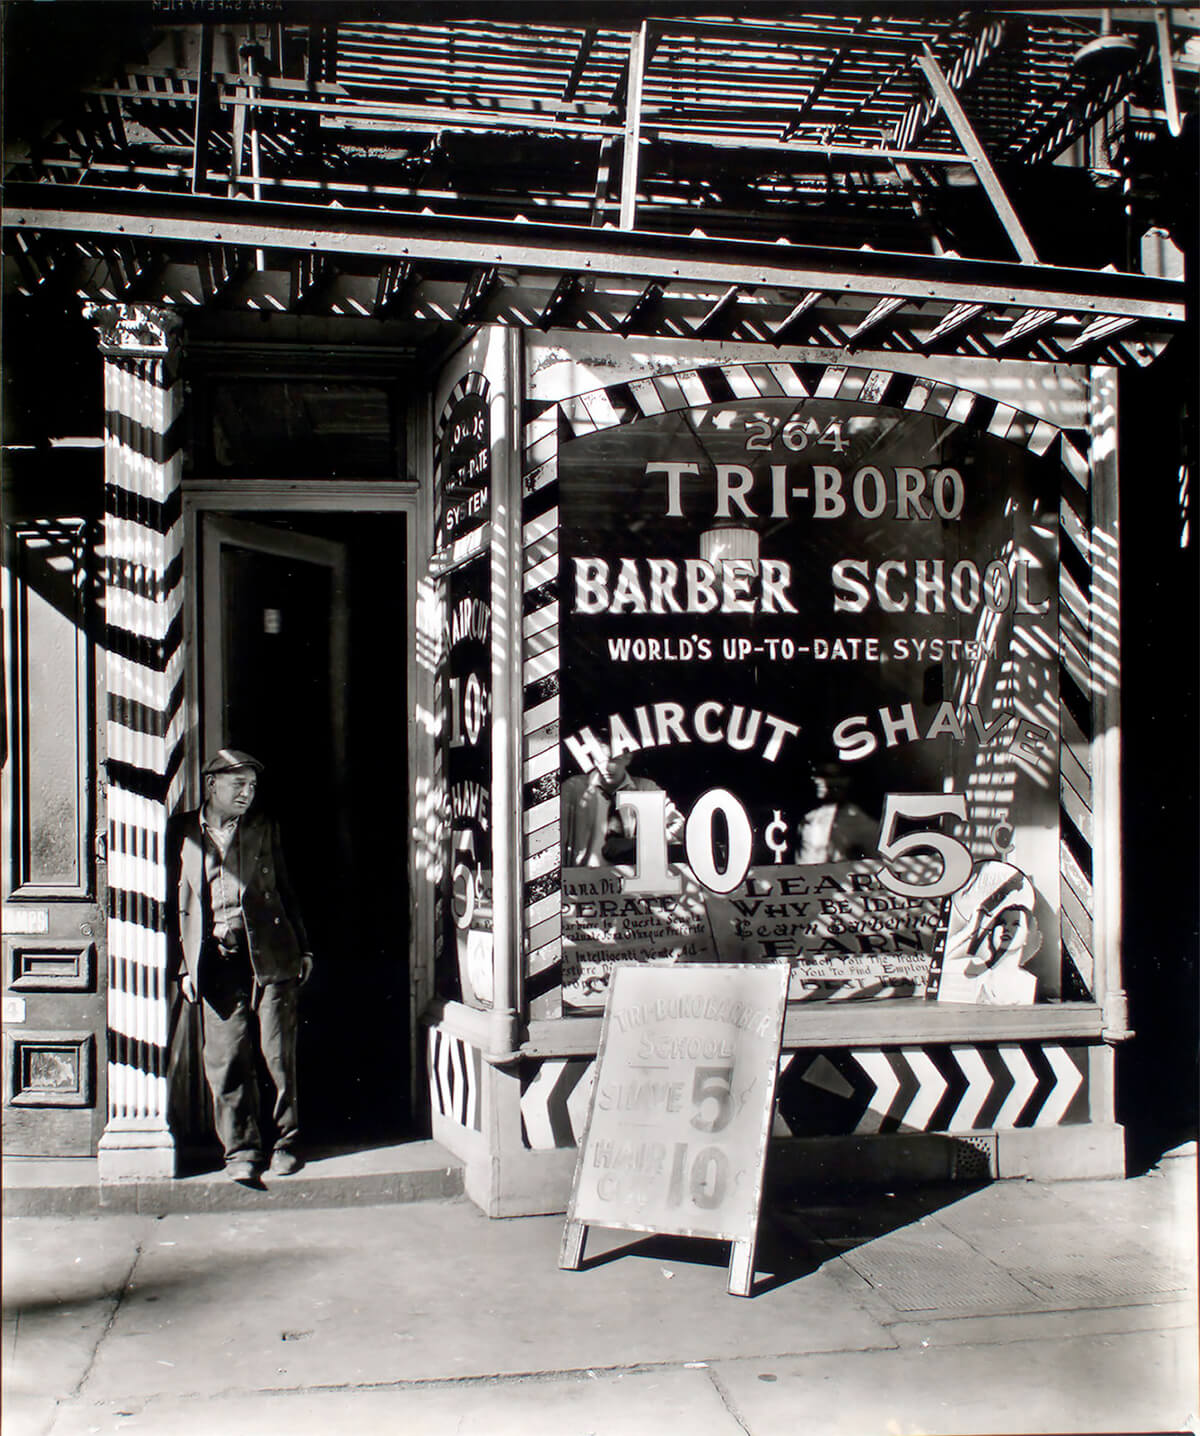 Tri-boro Barber School, 264 Bowery, Manhattan, photograph by Berenice Abbott, 1935. ©New York Public Library<p>© Berenice Abbott</p>